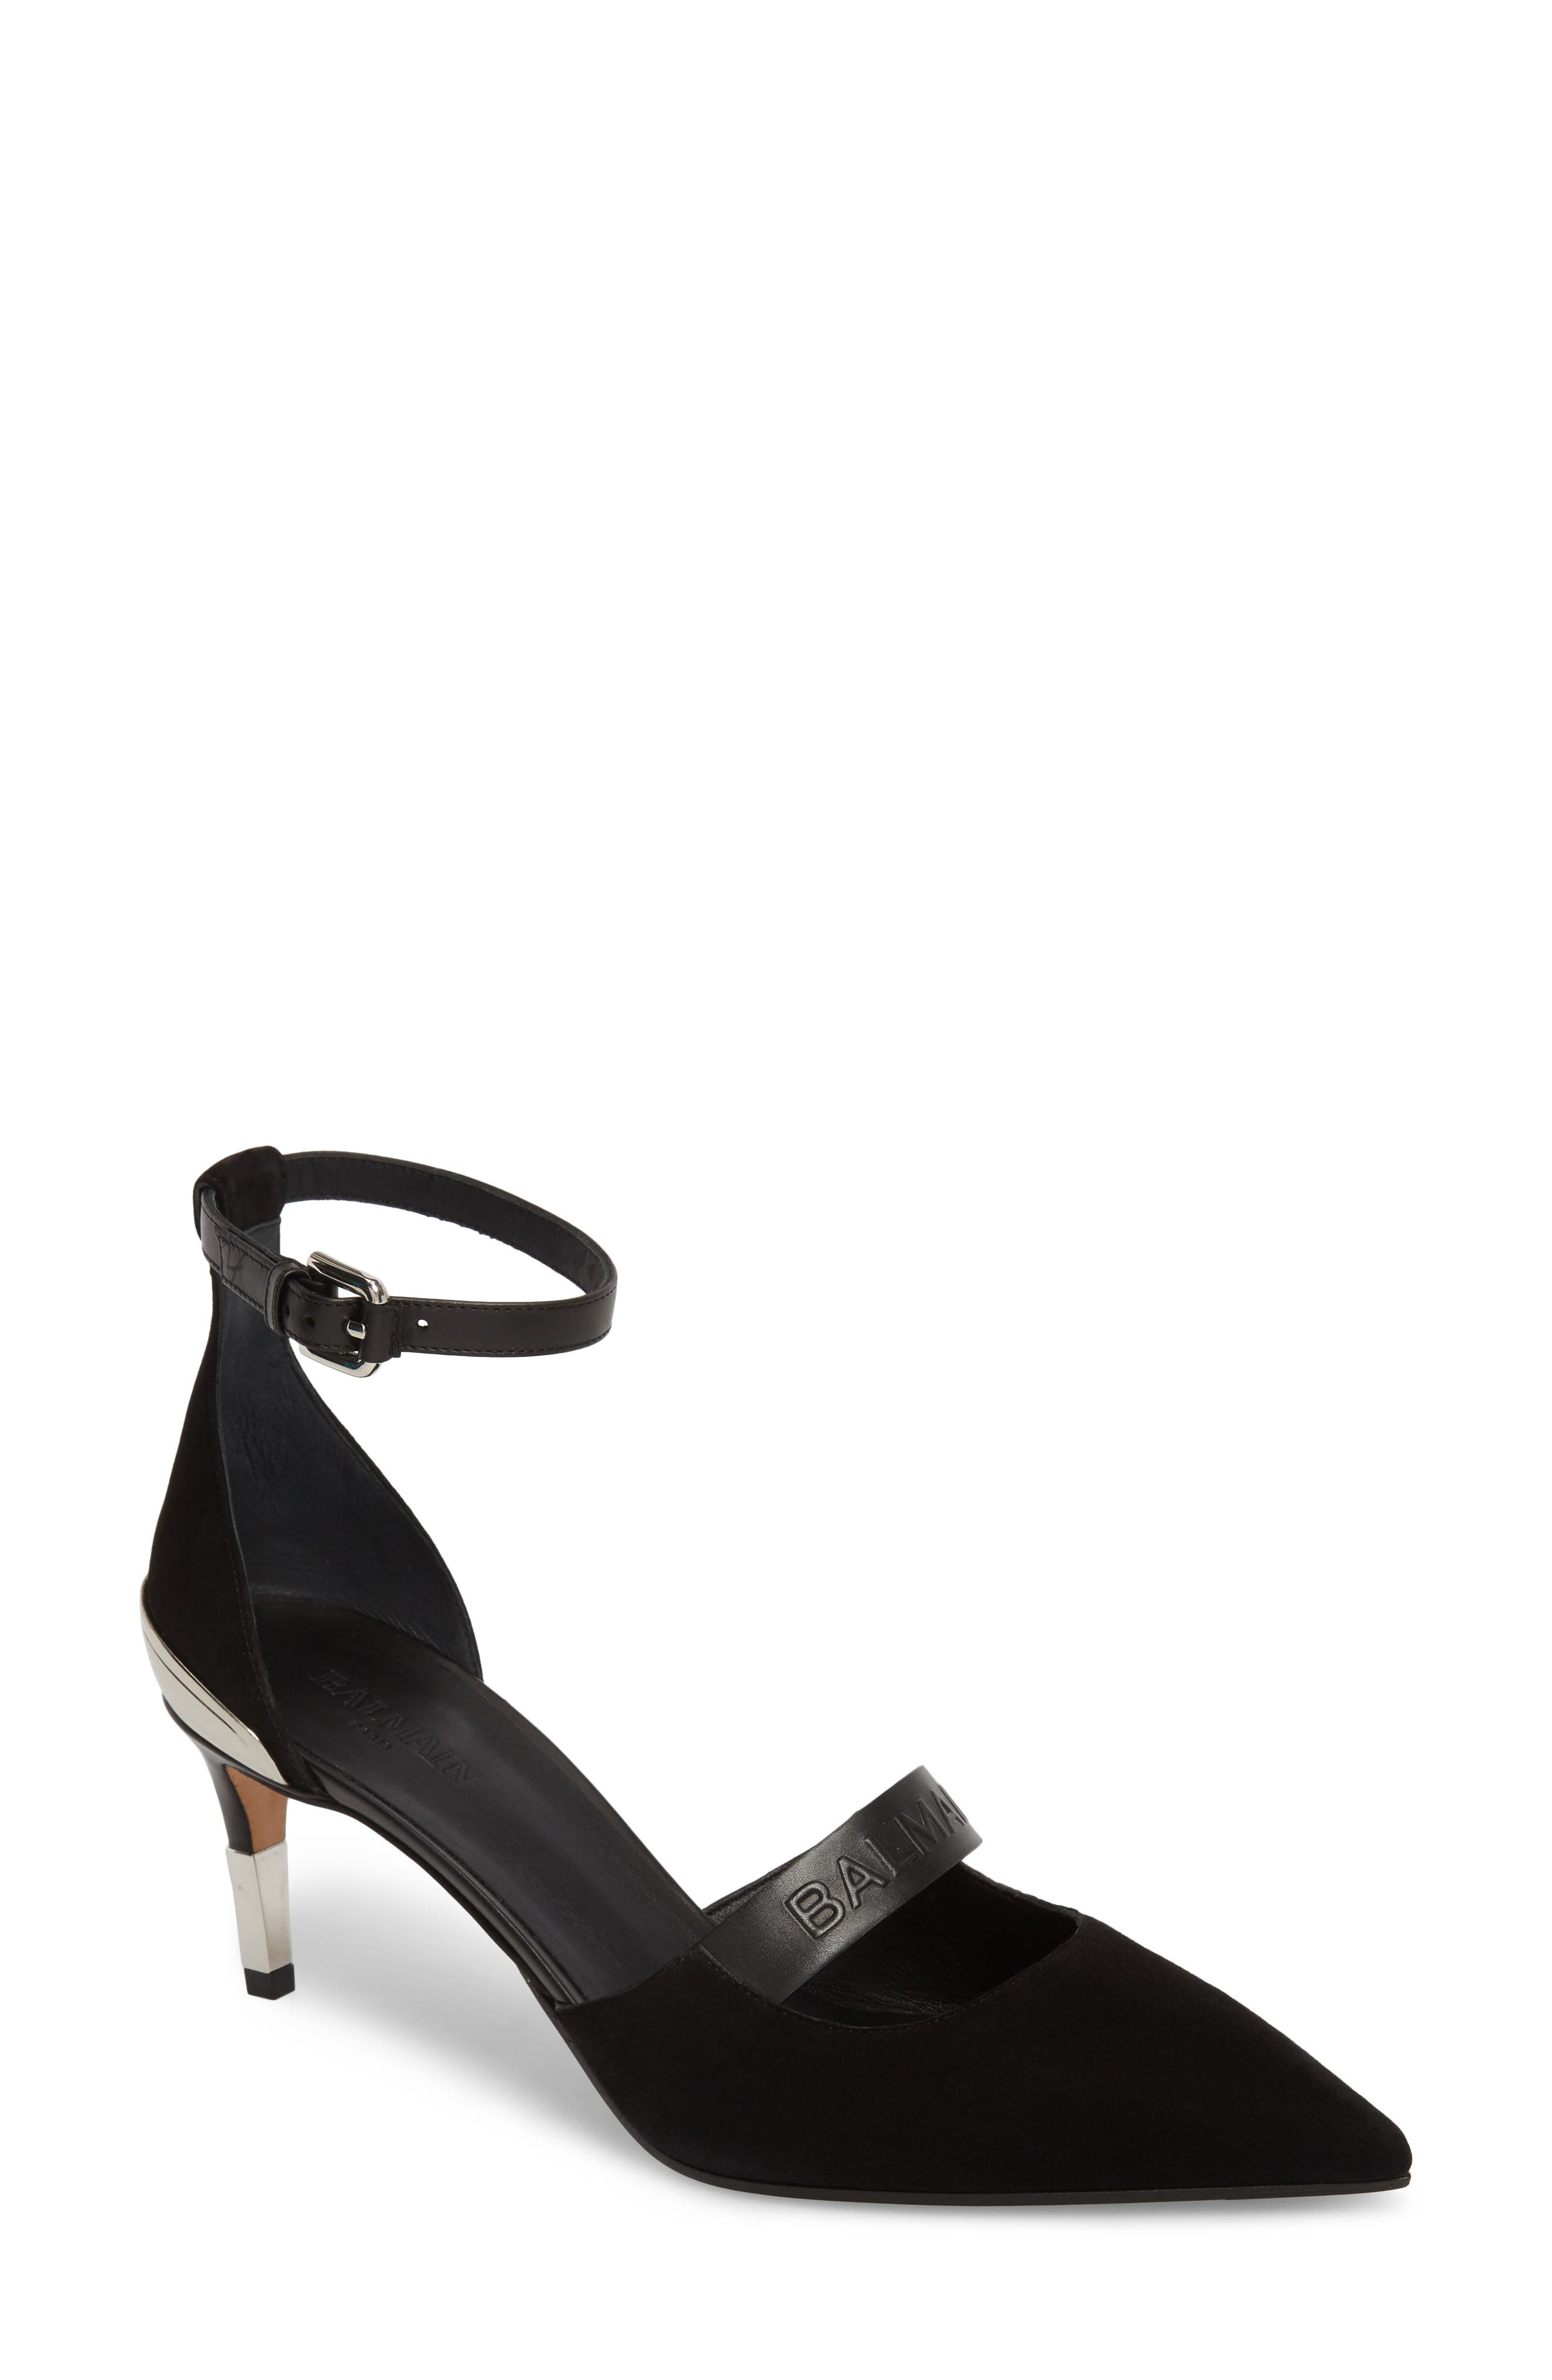 Chance Ankle Strap Pointy Toe Pump,                             Main thumbnail 1, color,                             Black